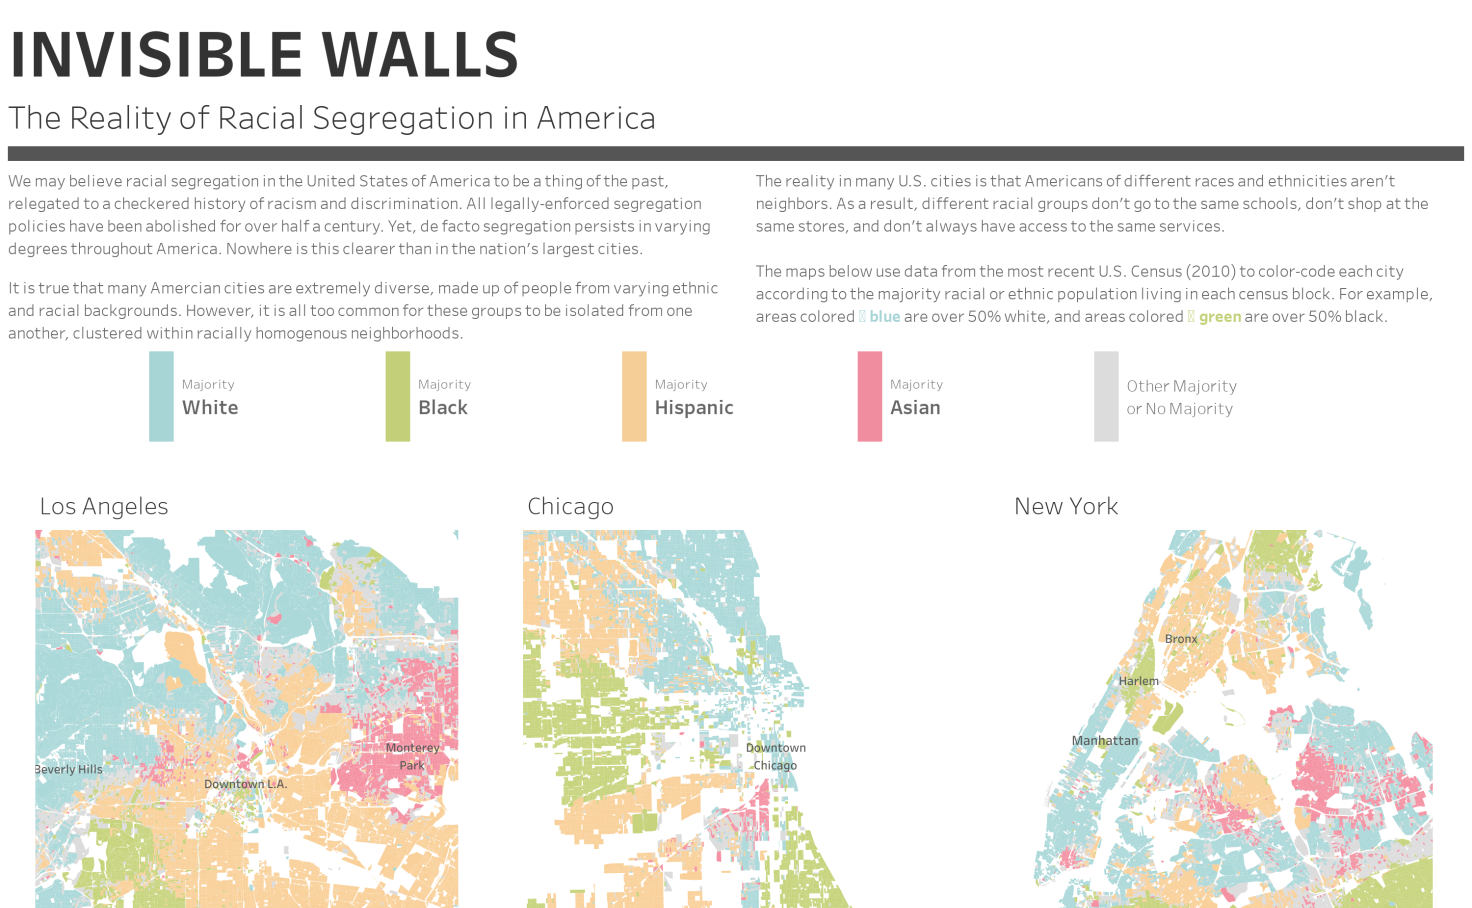 Map Of Americas Racial Segregation.Invisible Walls The Reality Of Racial Segregation In America Marc